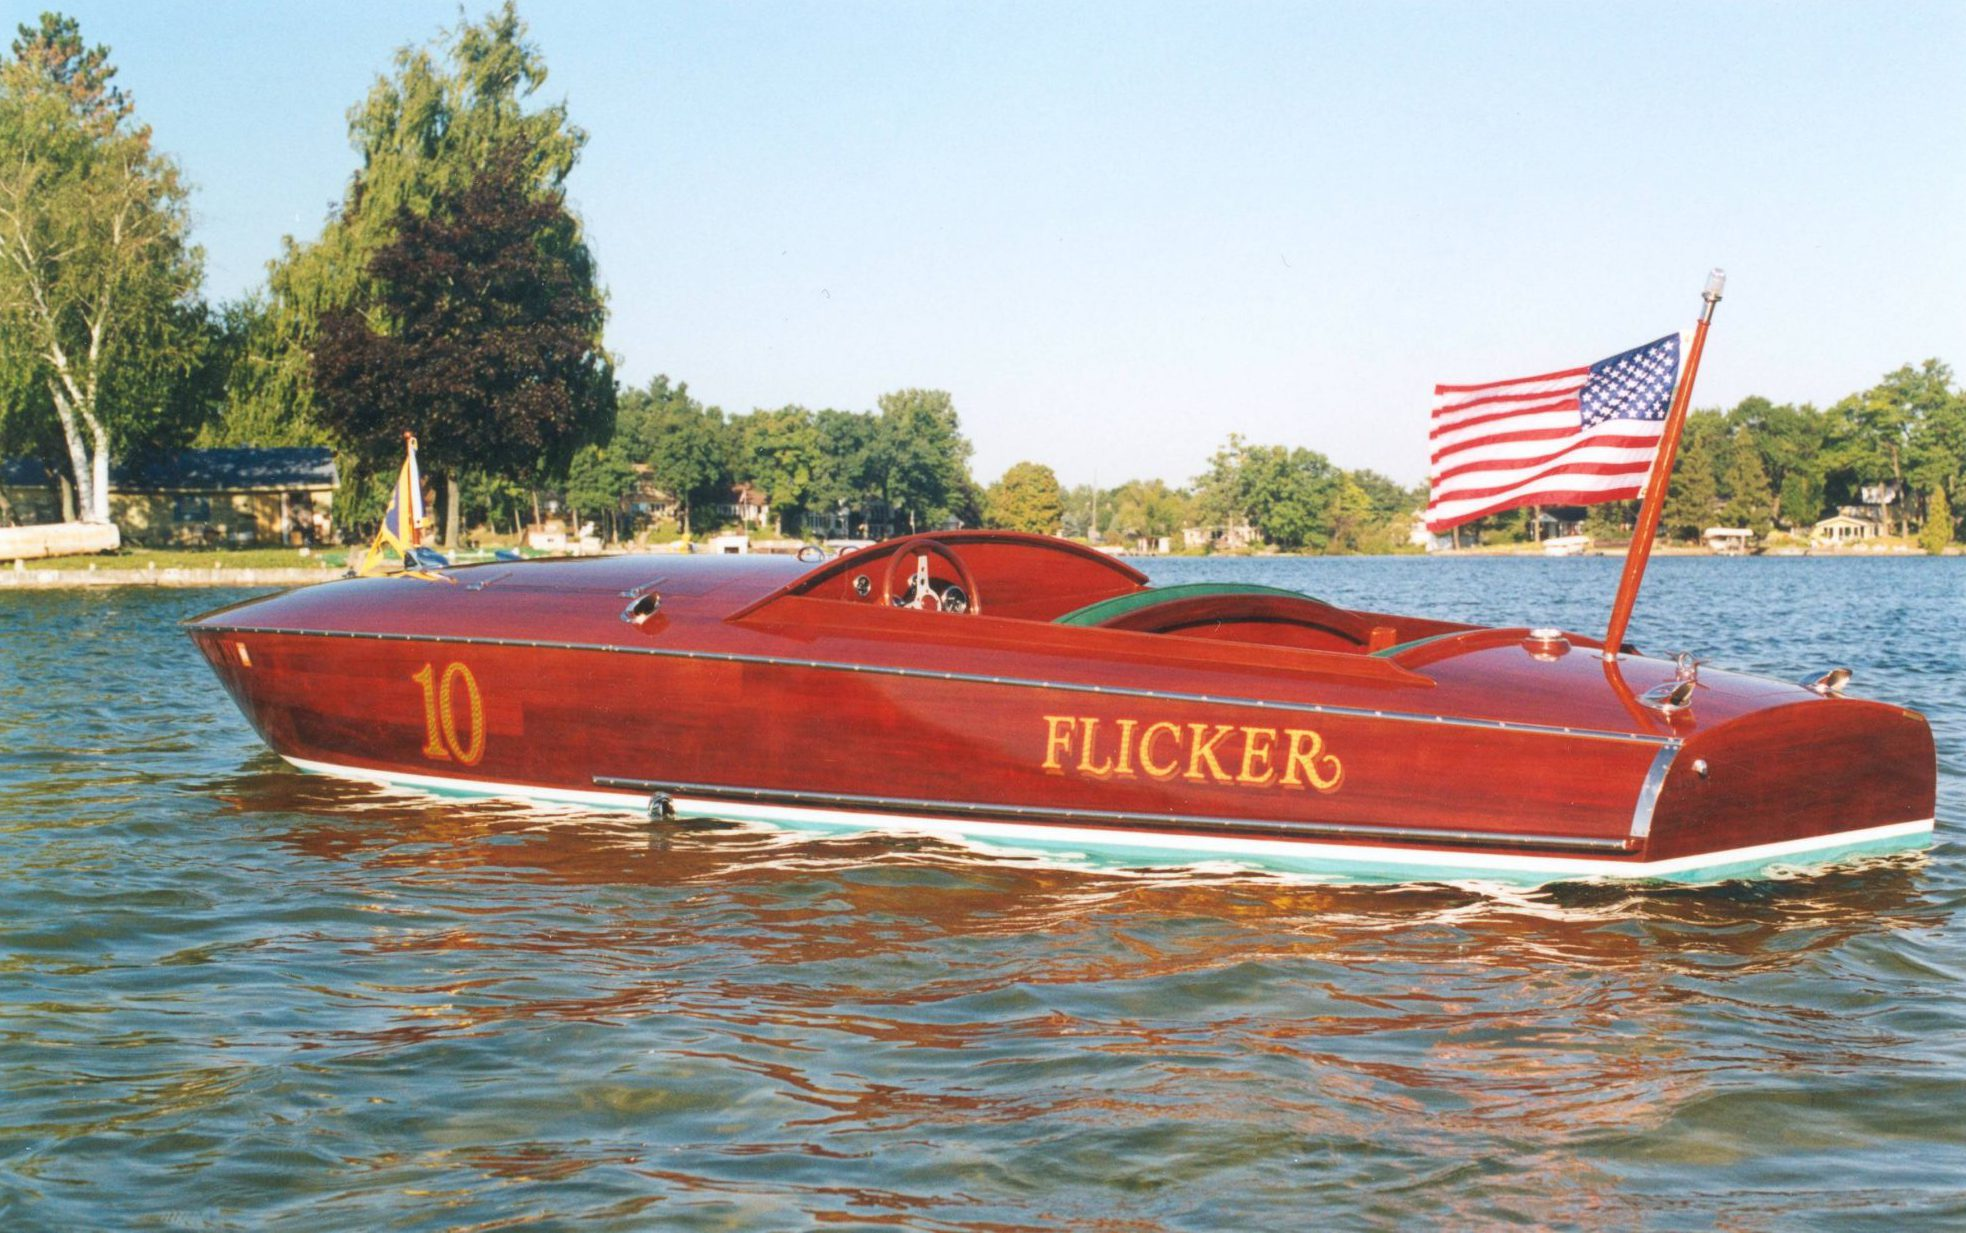 Flicker first power boat build by Van Dam